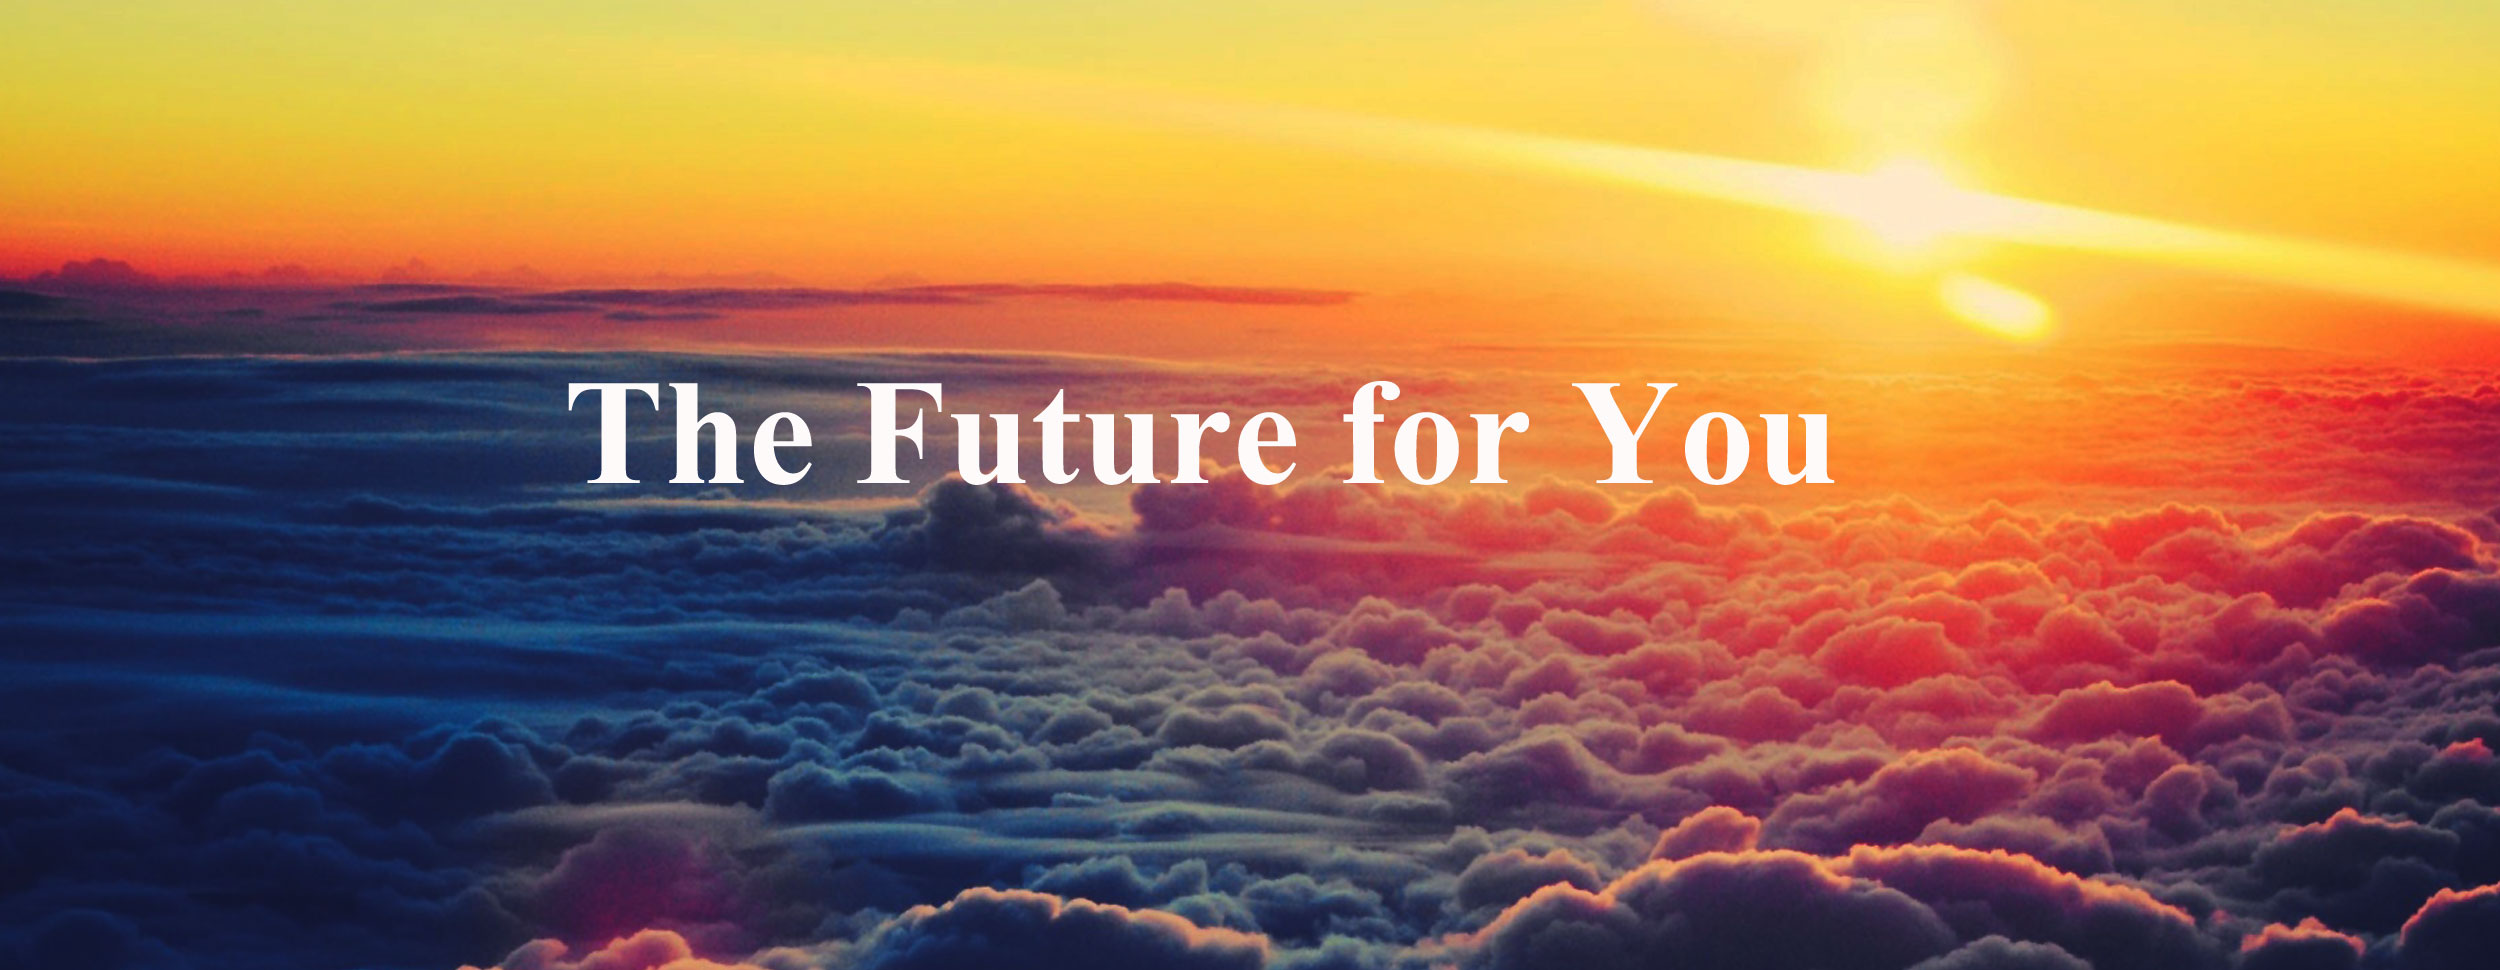 The-future-for-you